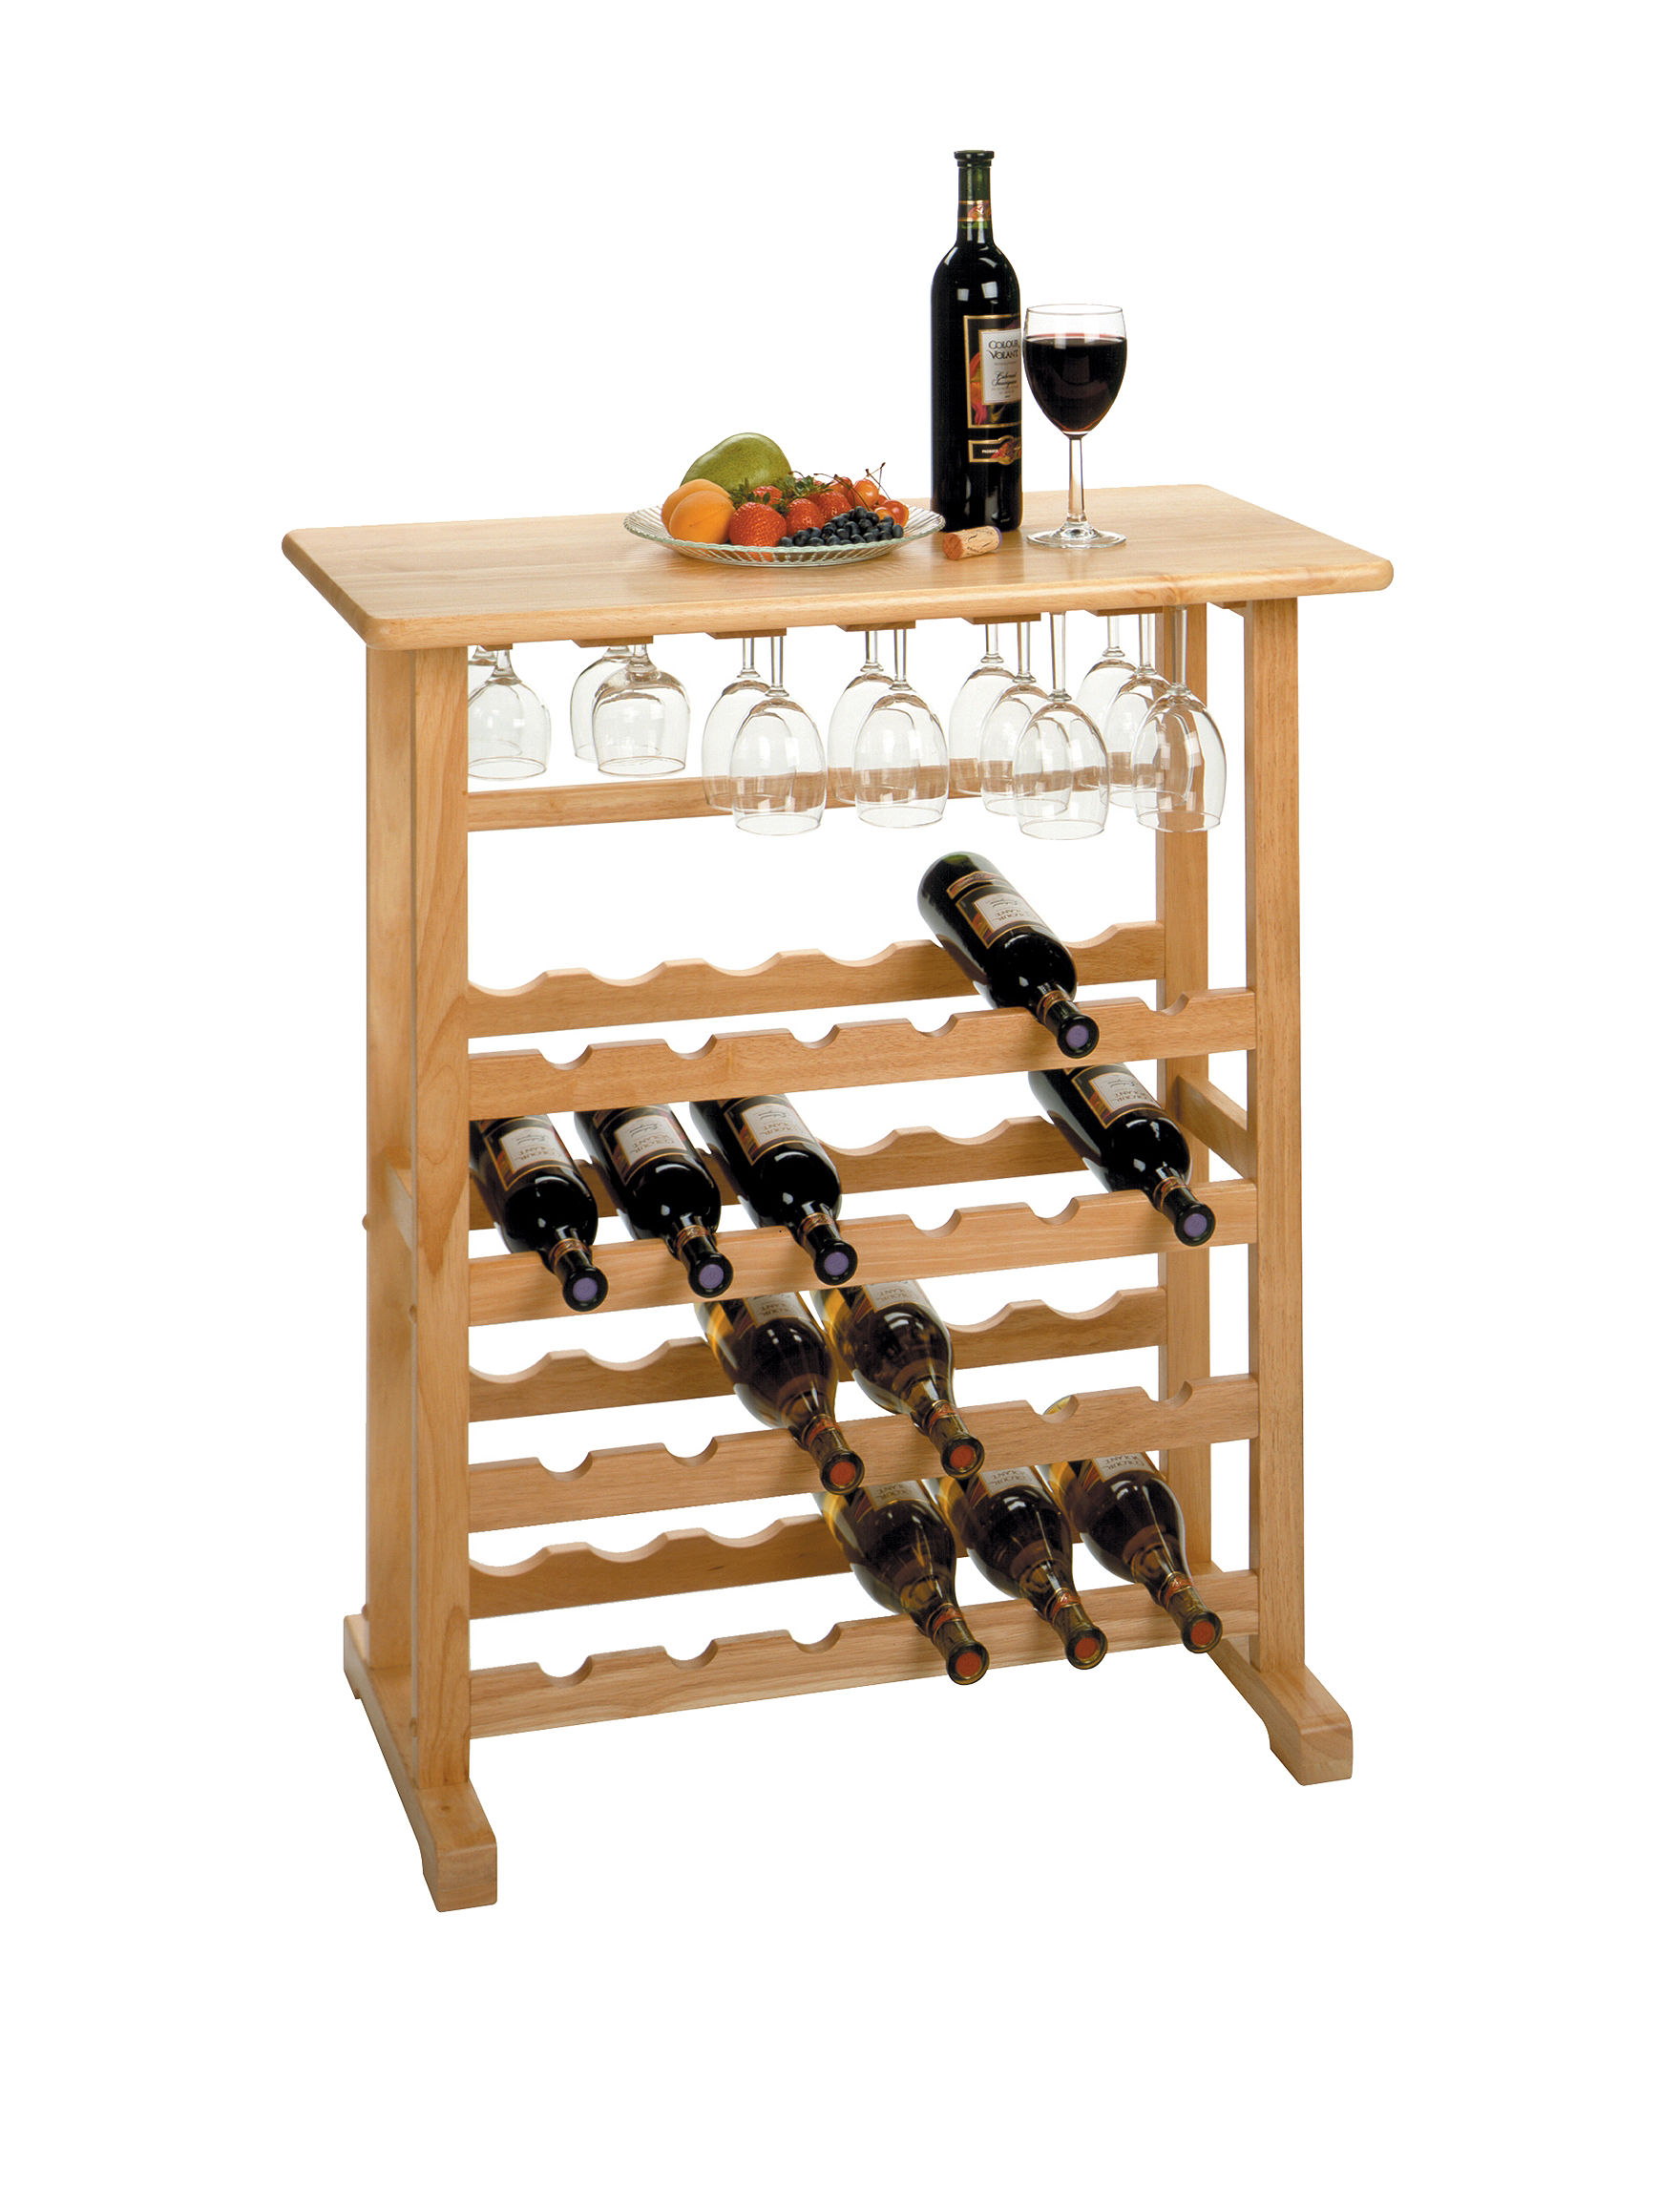 Winsome khaki Bar & Wine Storage Kitchen & Dining Furniture